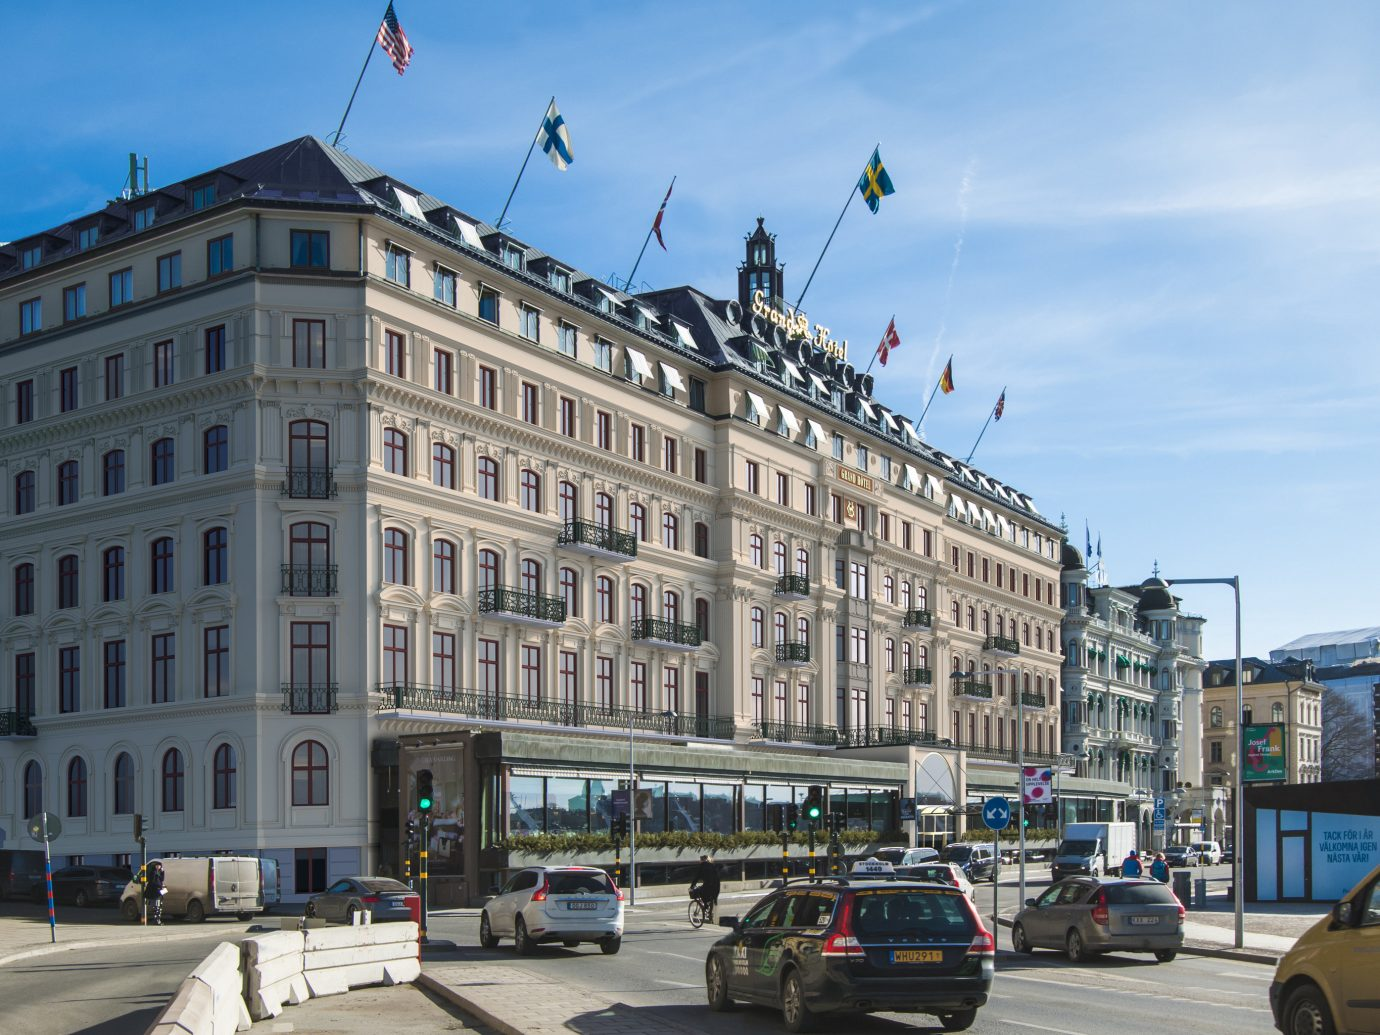 Hotels Stockholm Sweden outdoor building sky road street City landmark Town urban area metropolis metropolitan area Architecture Downtown mixed use plaza neighbourhood daytime house town square facade condominium tower block palace skyscraper classical architecture